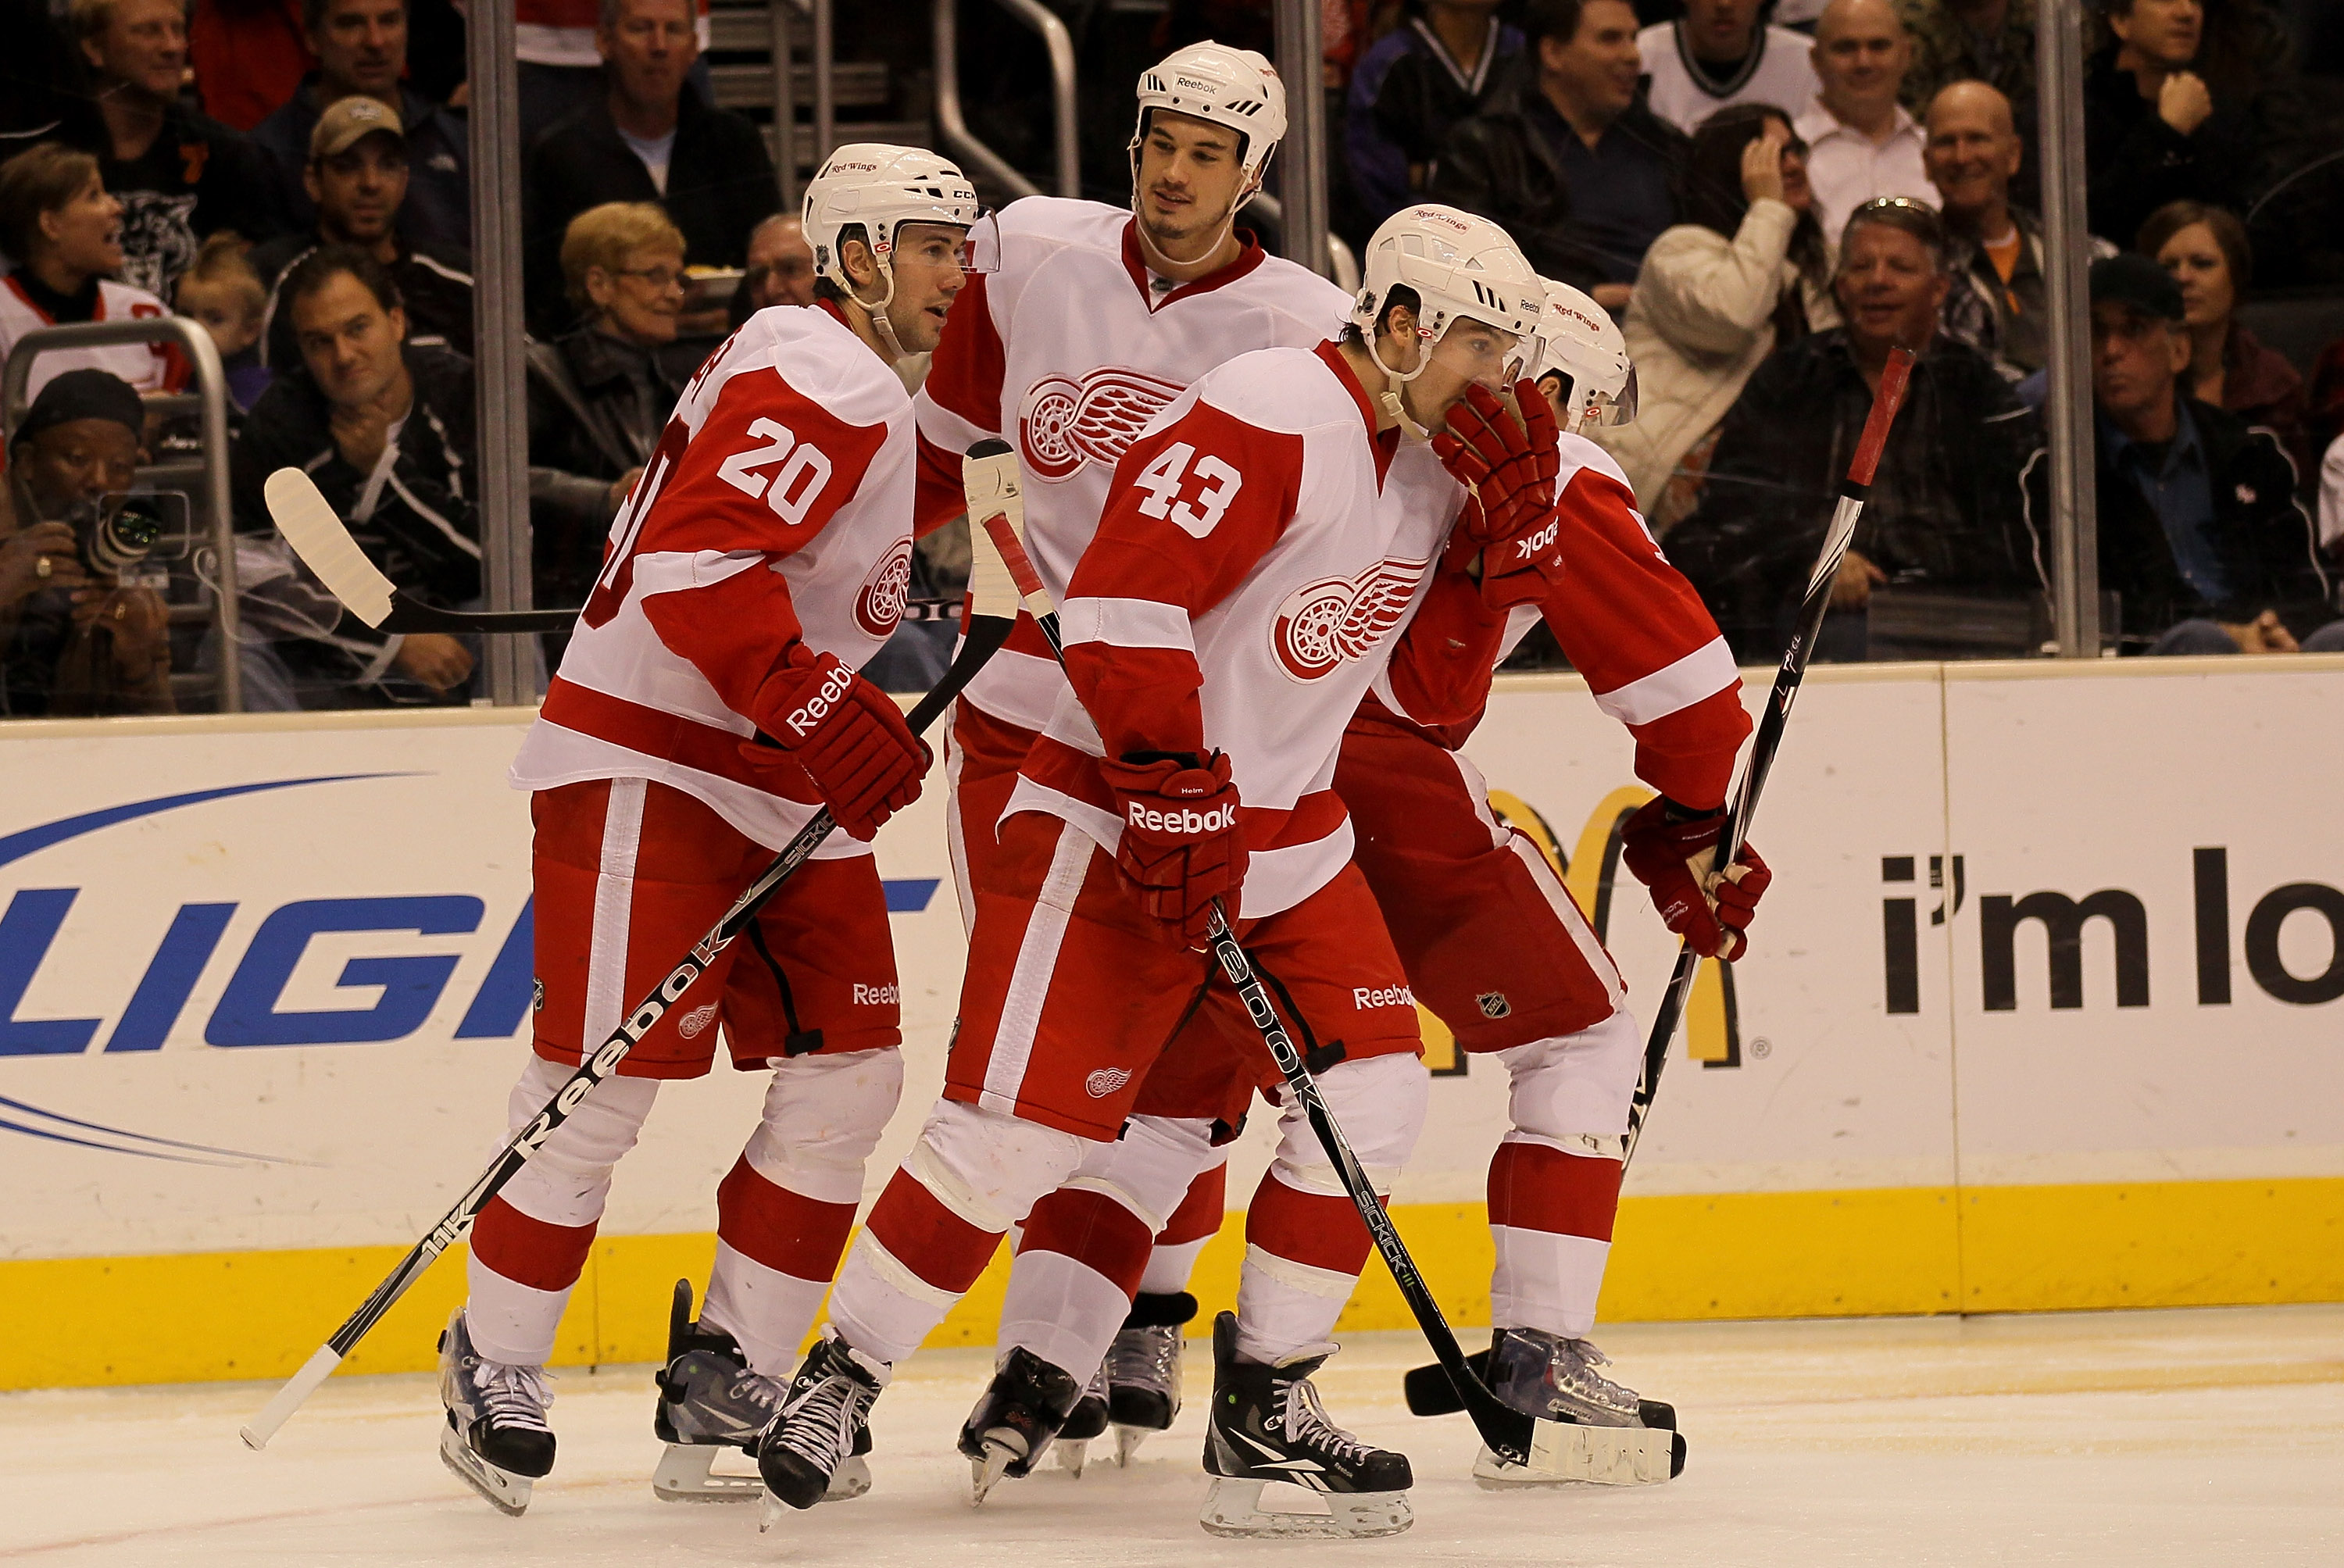 LOS ANGELES, CA - FEBRUARY 28: Drew Miller #20 of the Detroit Red Wings celebrates his third pereiod goal with Jonathan Ericsson #52 (C) and Darren Helm #43 against the Los Angeles Kings at Staples Center on February 28, 2011 in Los Angeles, California.